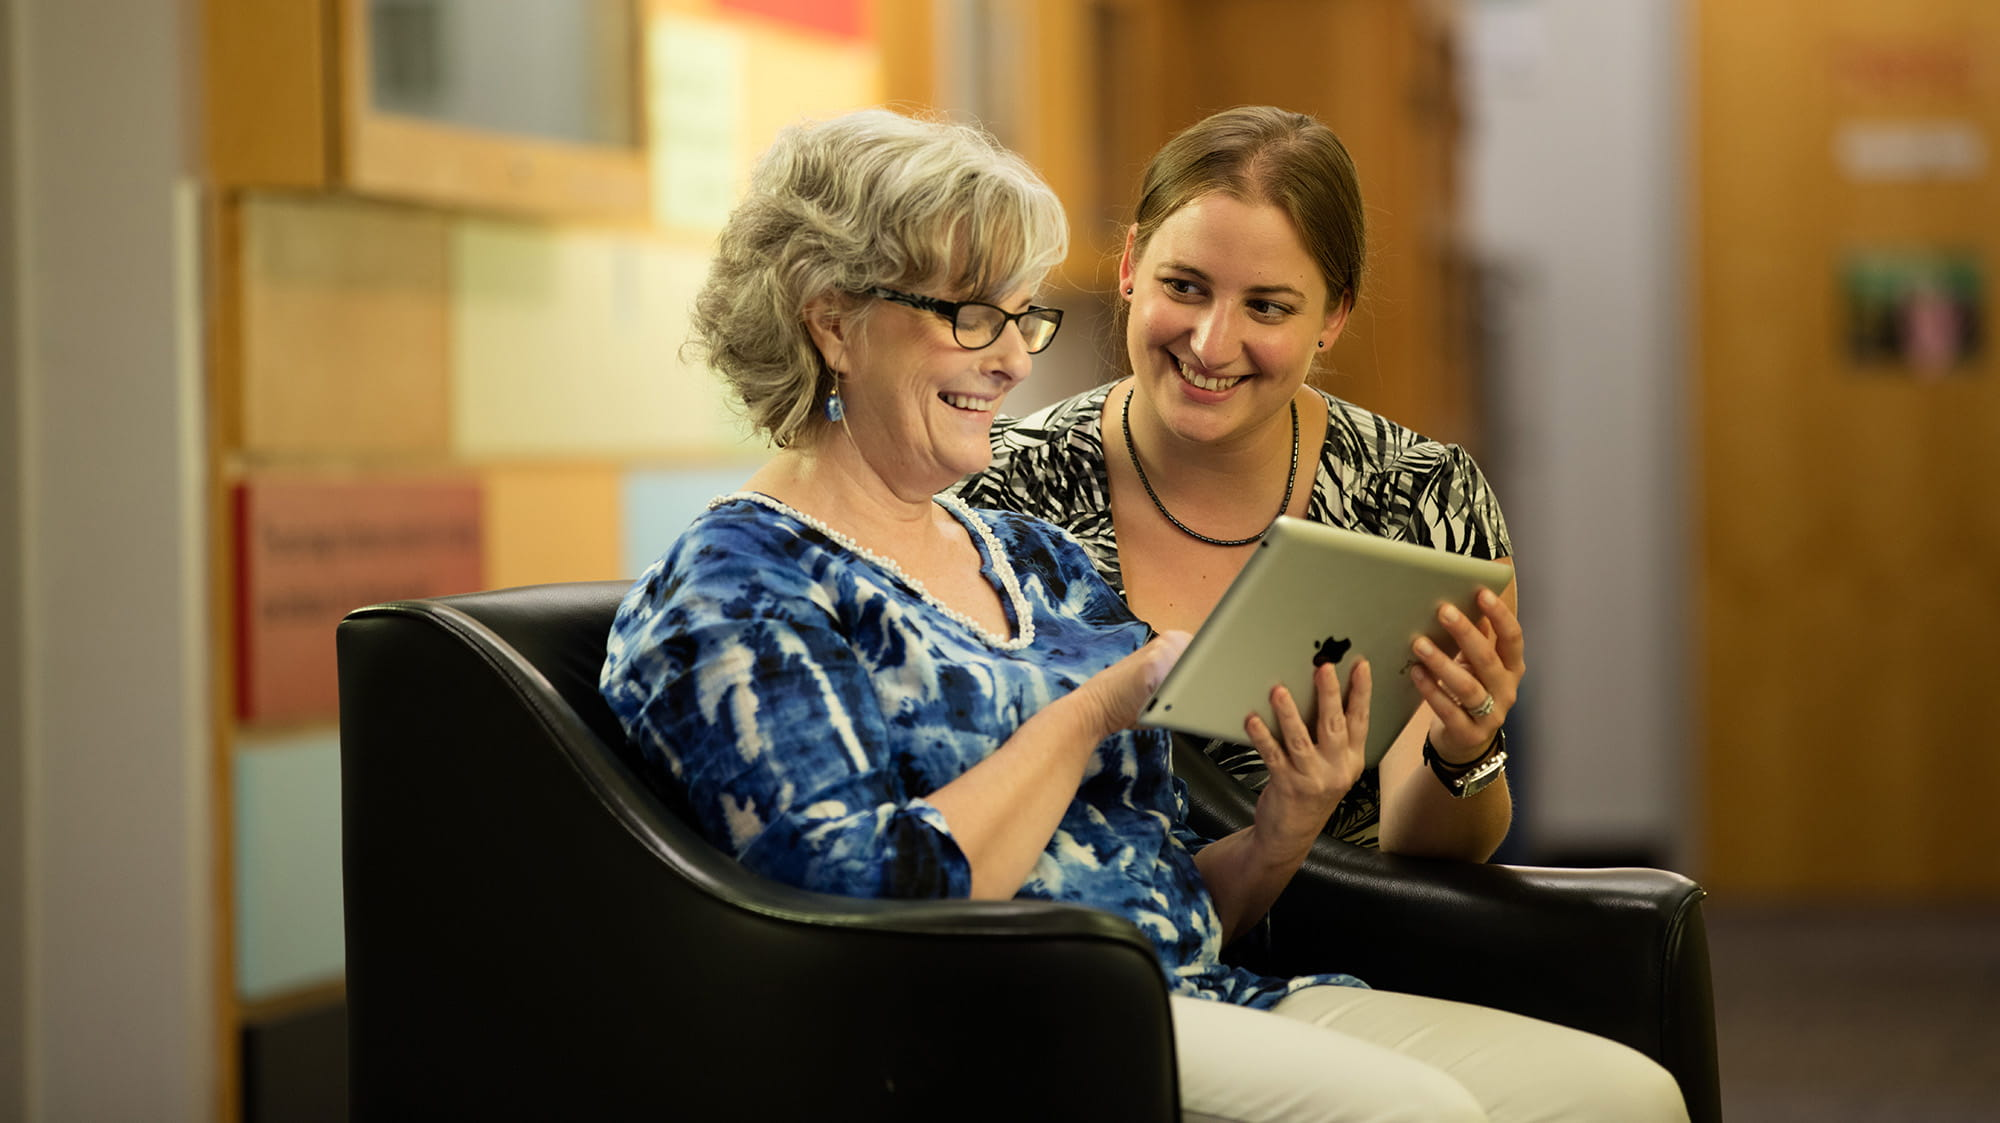 A student helping an older woman use a tablet